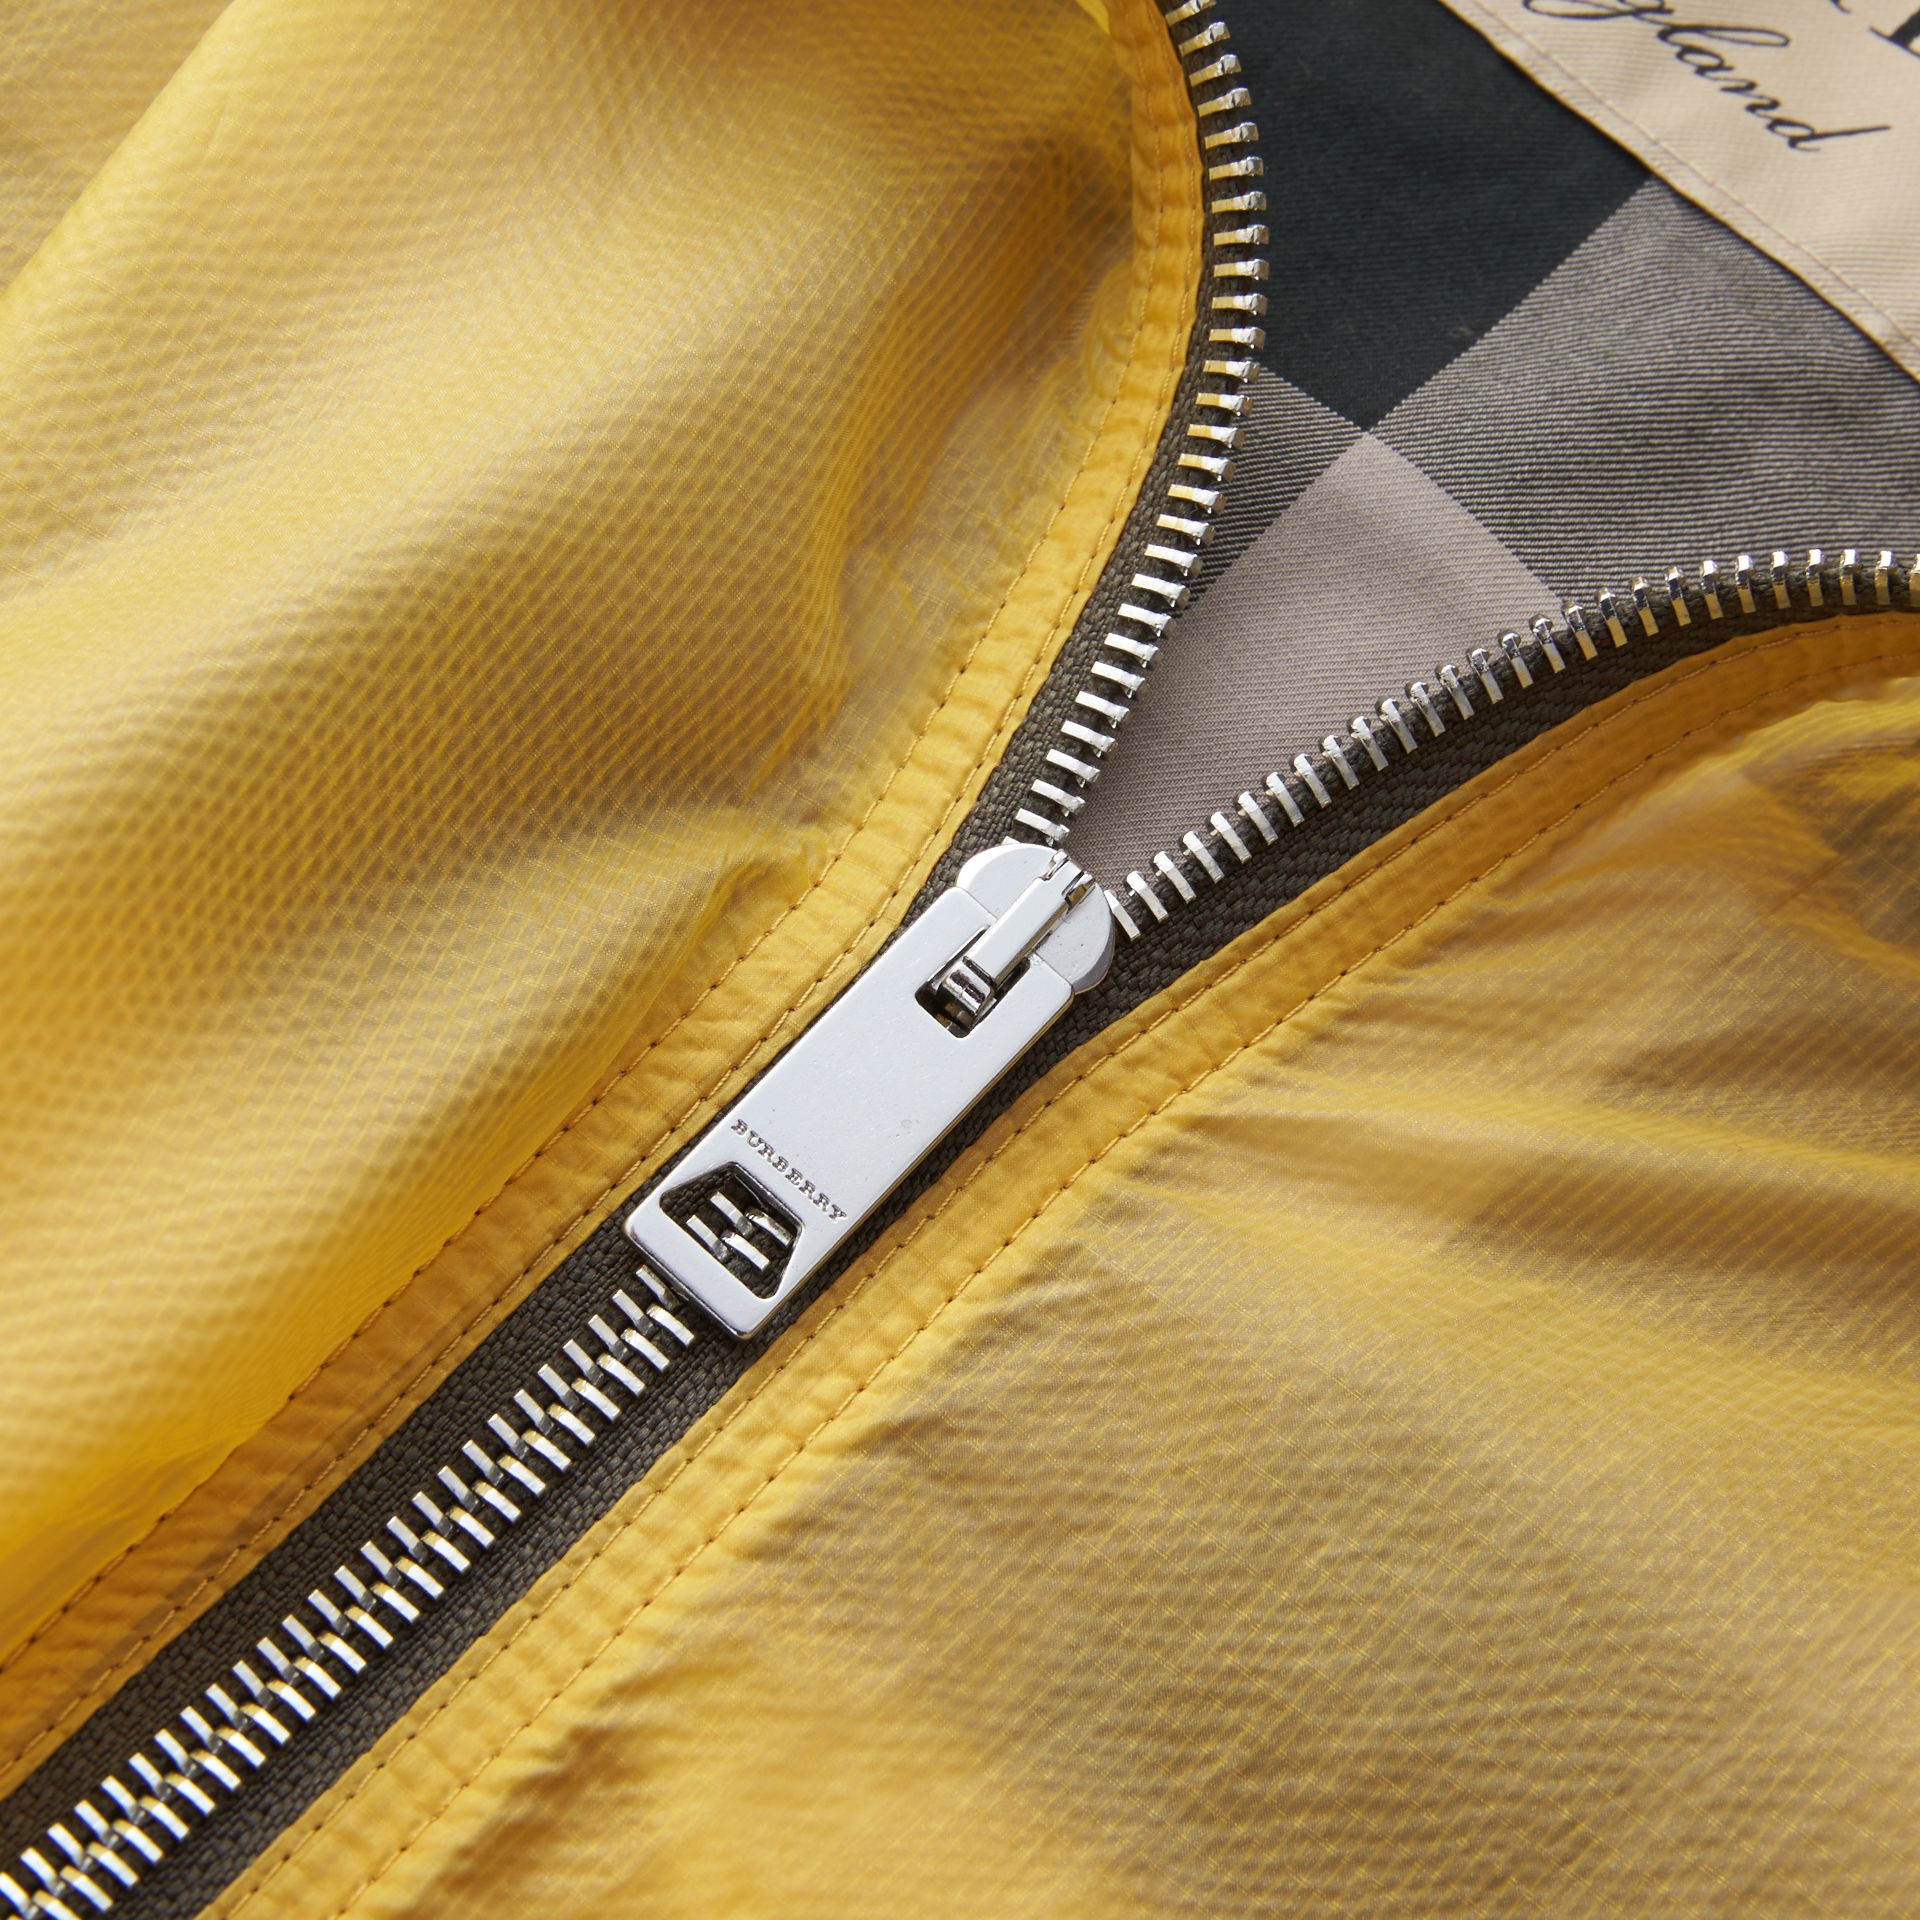 Hooded Super-lightweight Jacket in Pale Yellow - Men | Burberry - gallery image 1